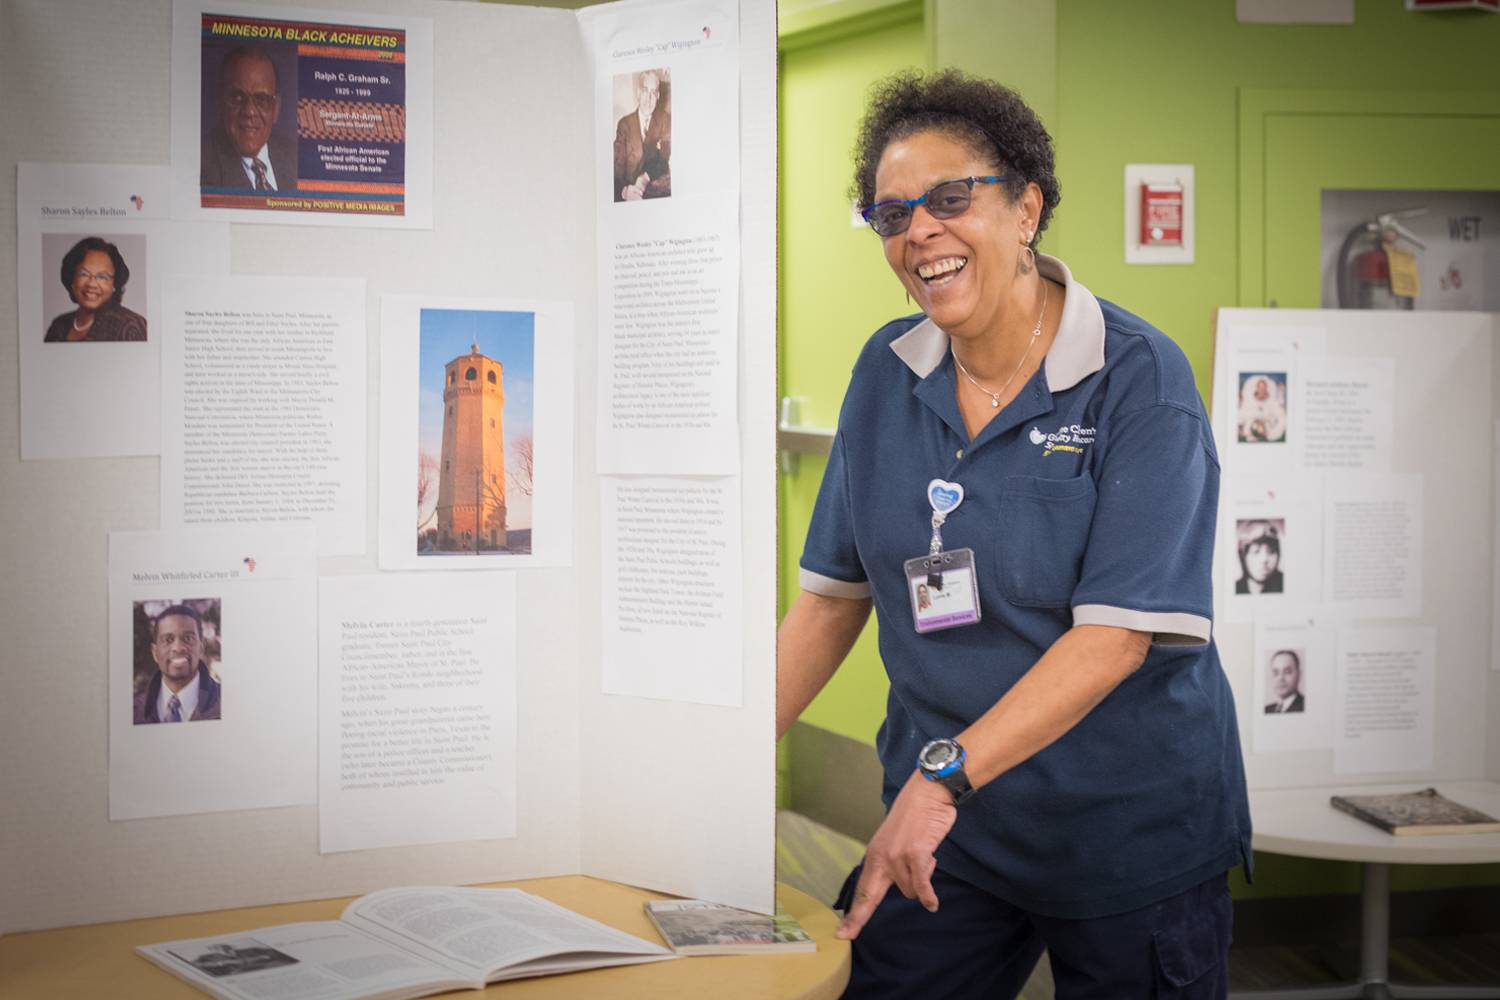 Lynne Washington stands near a Black History Month exhibit.